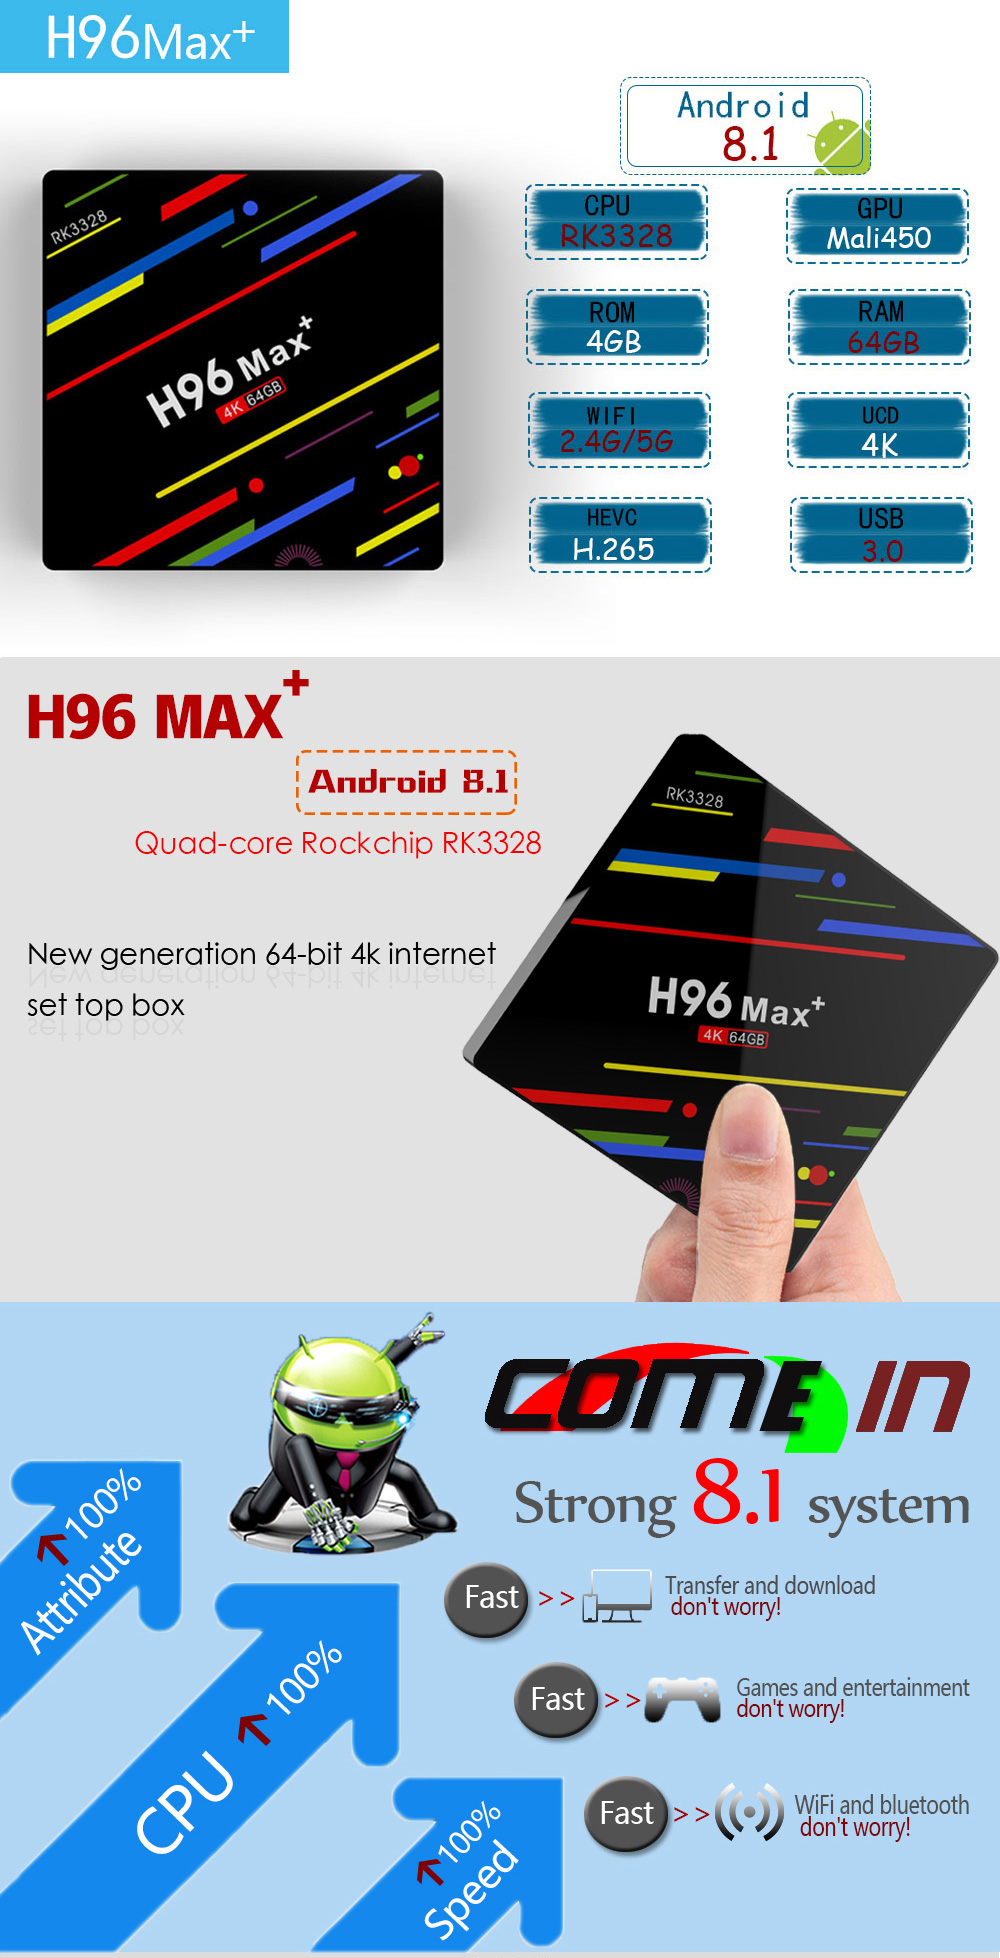 dcfb7287 69c3 4346 b4a0 2d41a19d9508 - H96 Max Plus RK3328 4GB RAM 64GB ROM Android 8.1 USB3.0 5G WIFI TVボックスサポートHD Netflix 4K Youtube